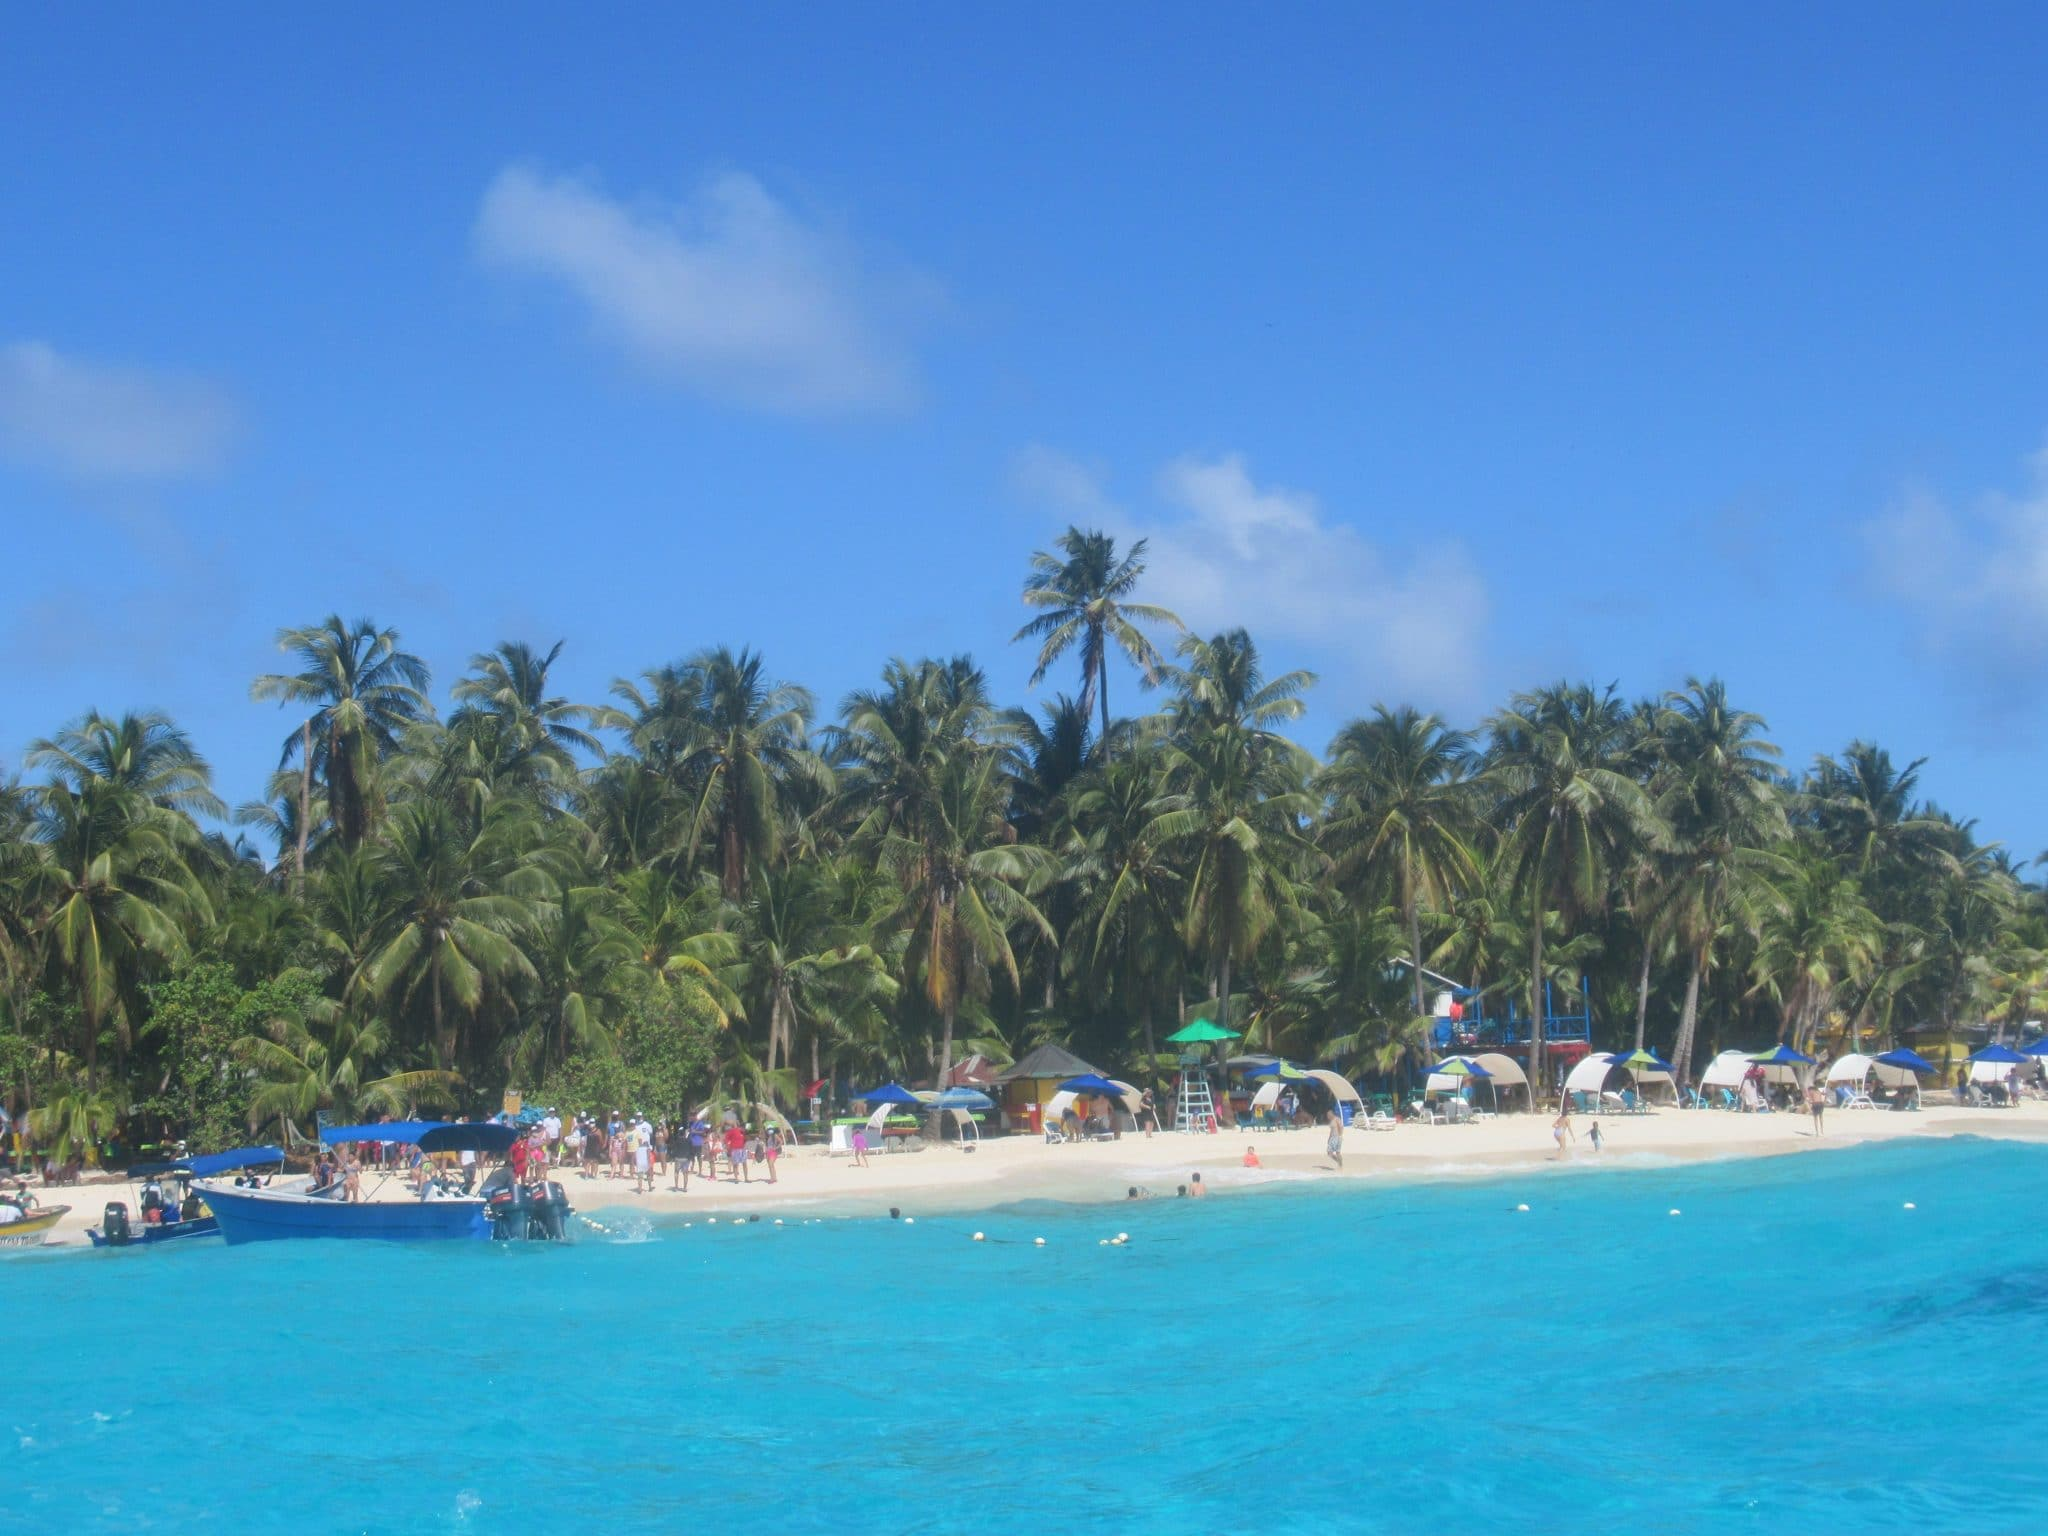 Photo of the beach front at Johnny Cay near the island of San Andres.